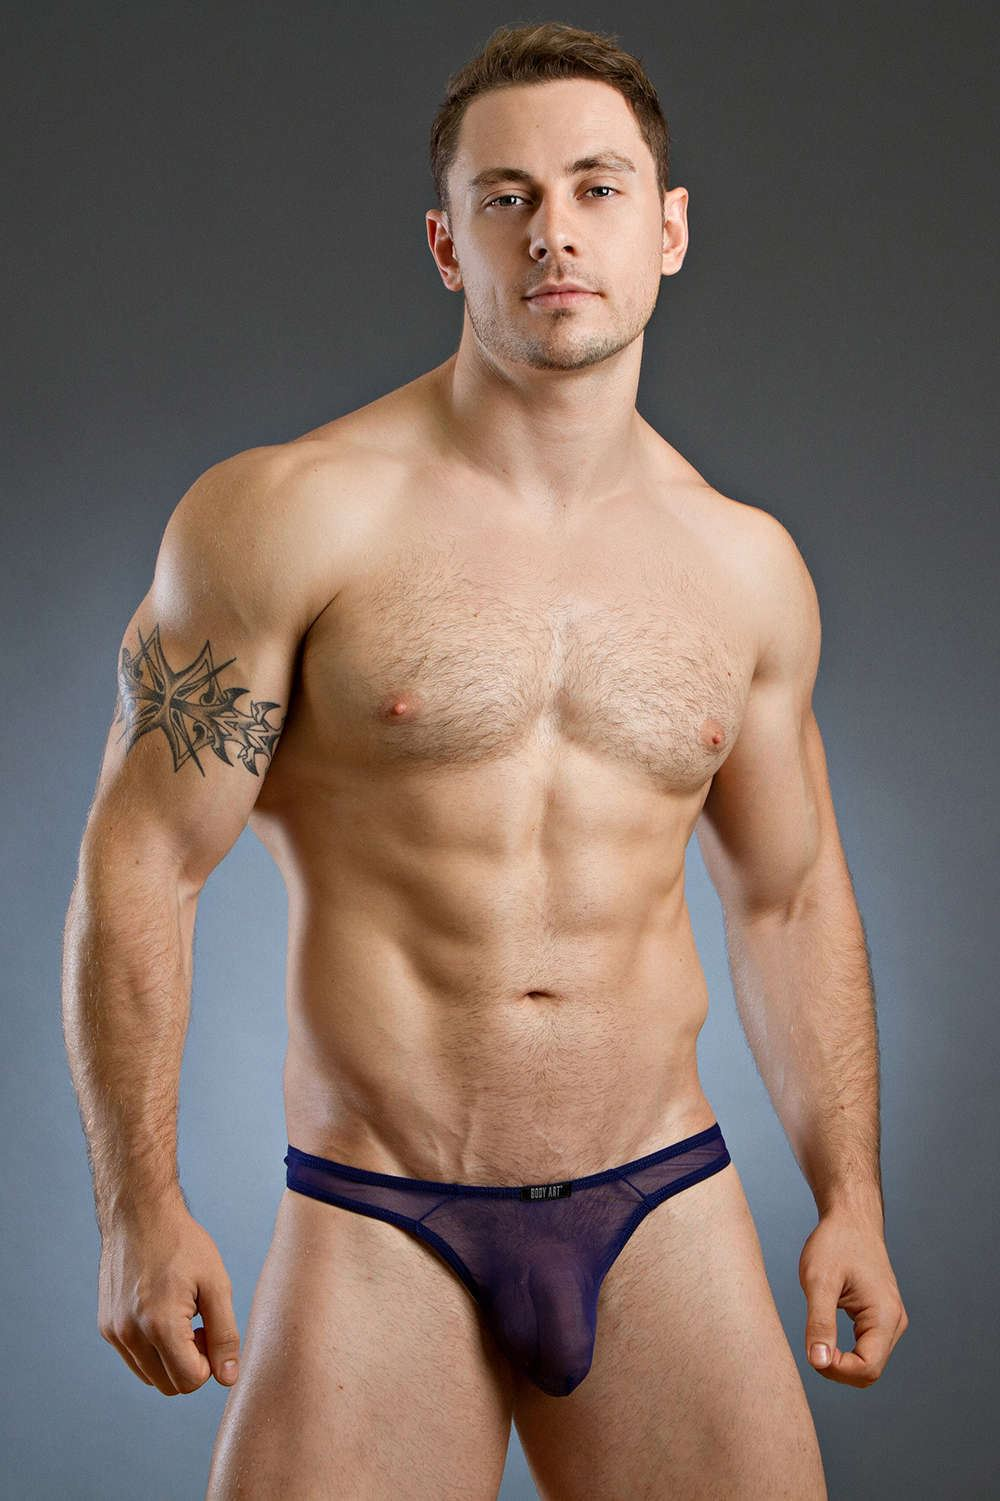 Look out for the massive deals on best Mens Underwear at Mensuas. The store caters a gigantic assortment of styles like bikinis, briefs, thongs, g-strings, jockstraps for one and all.